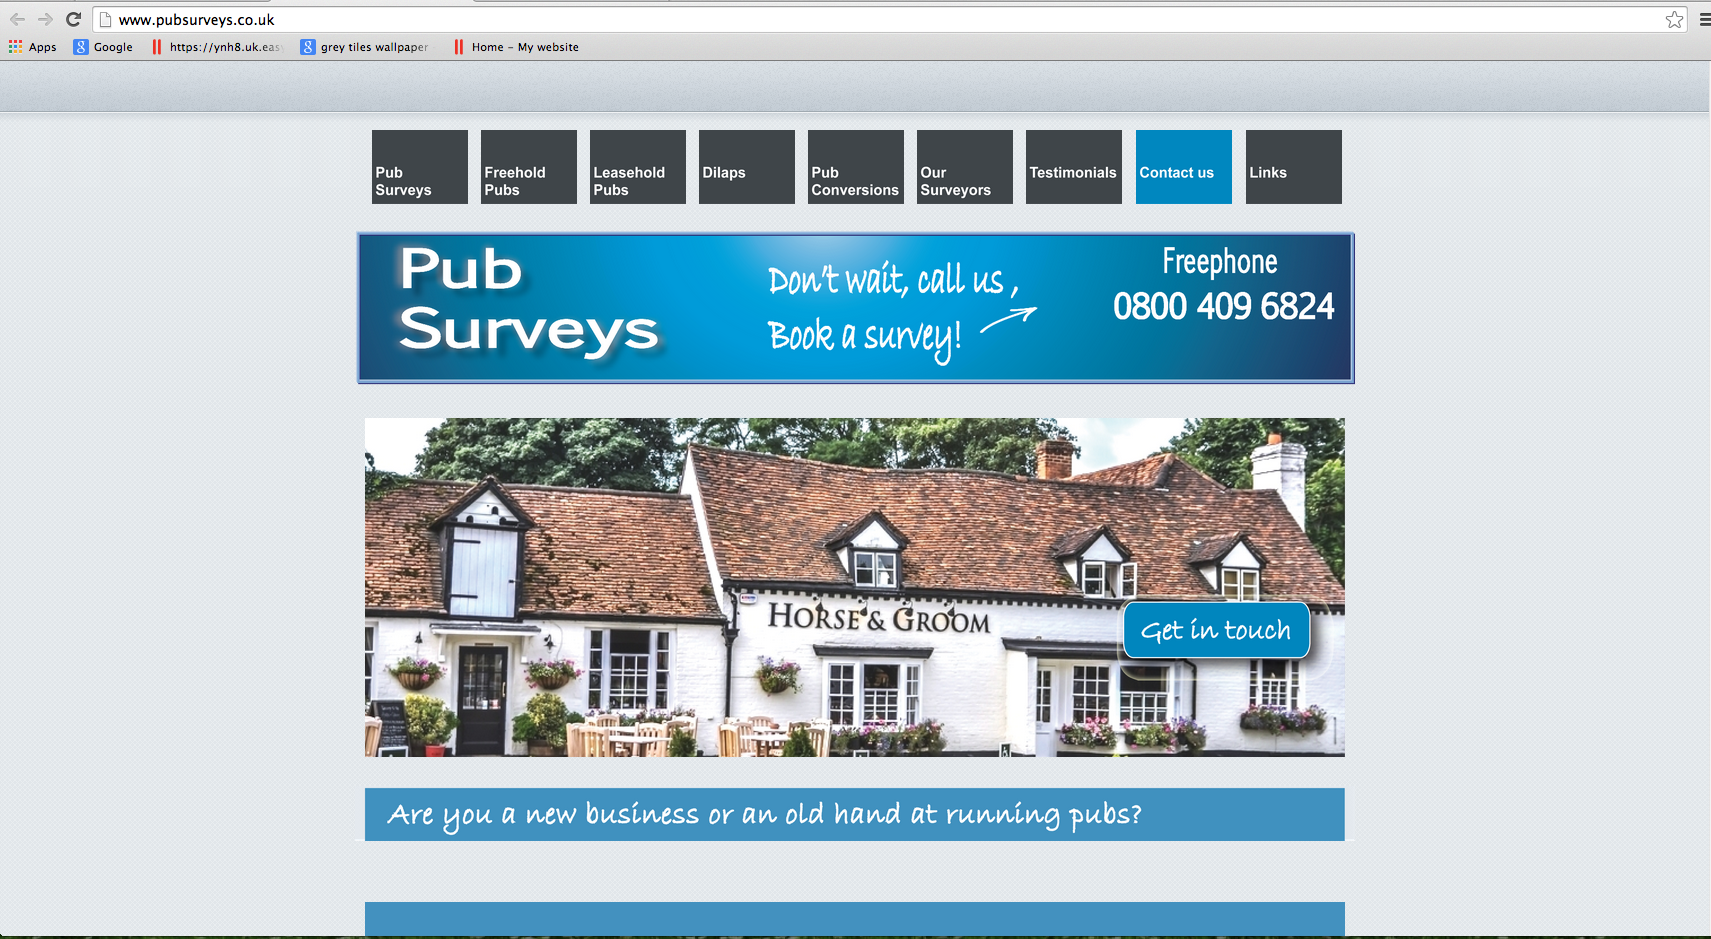 Pub Surveys